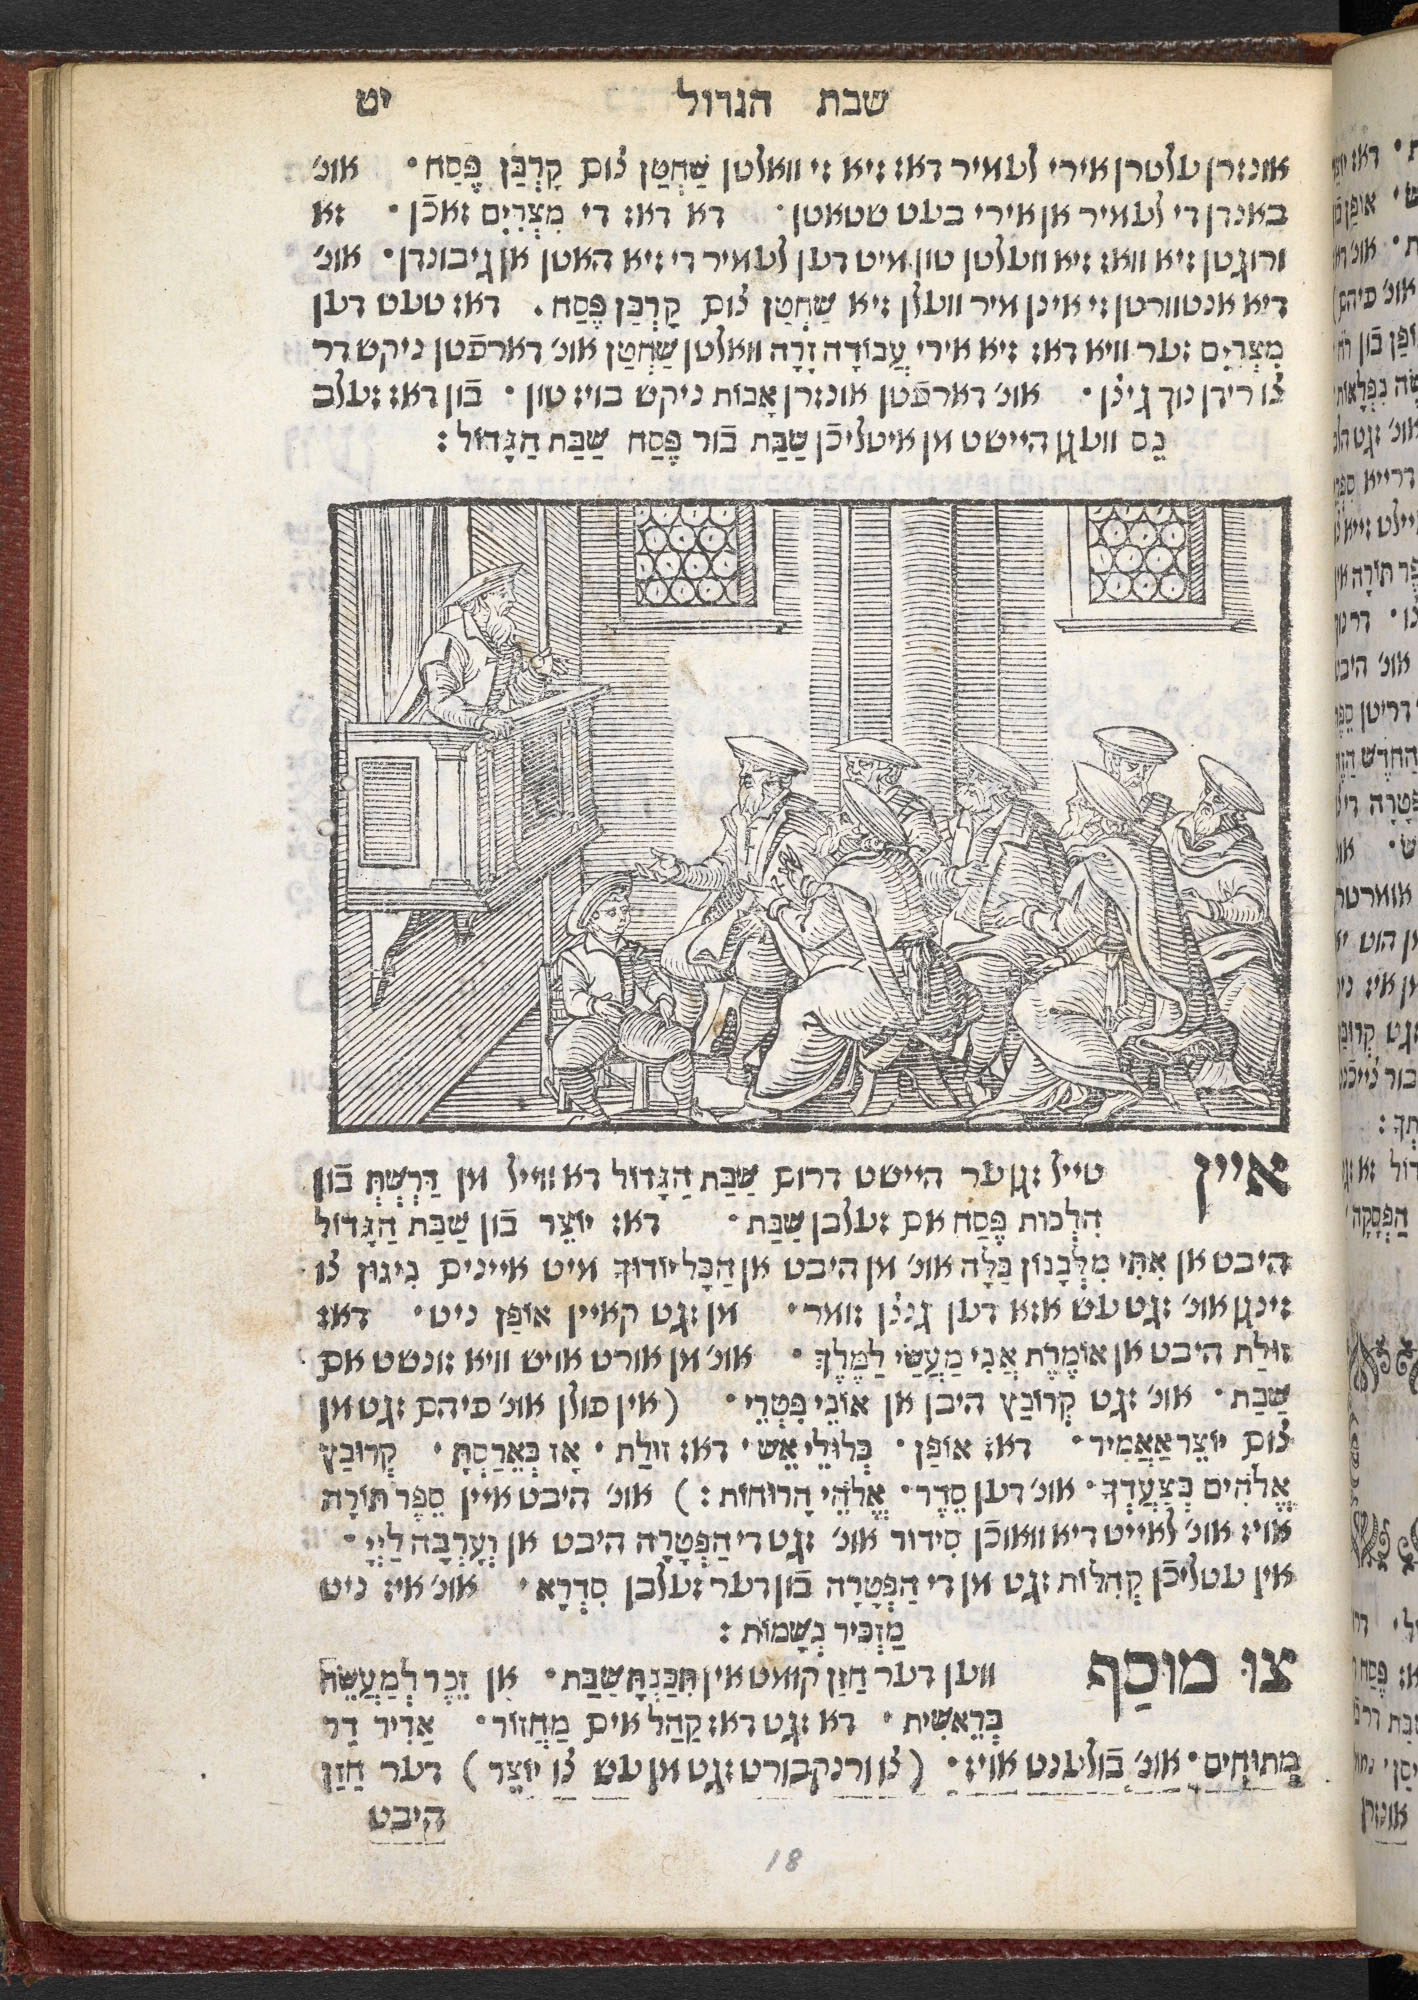 A Jewish reading of The Merchant of Venice - The British Library